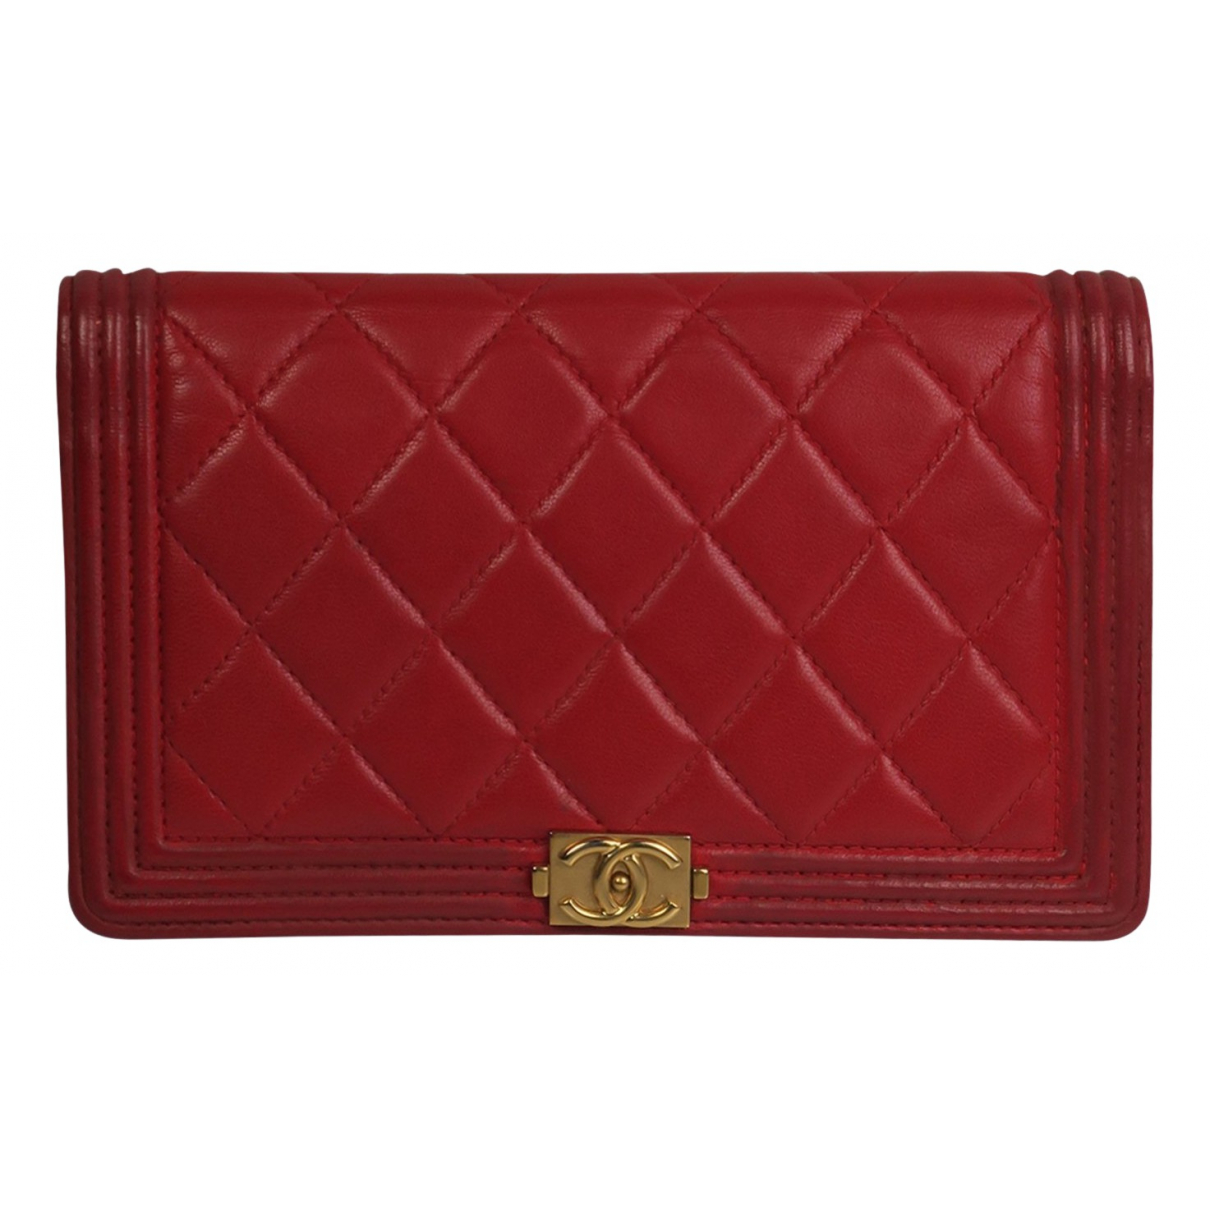 Chanel Boy Red Leather wallet for Women N